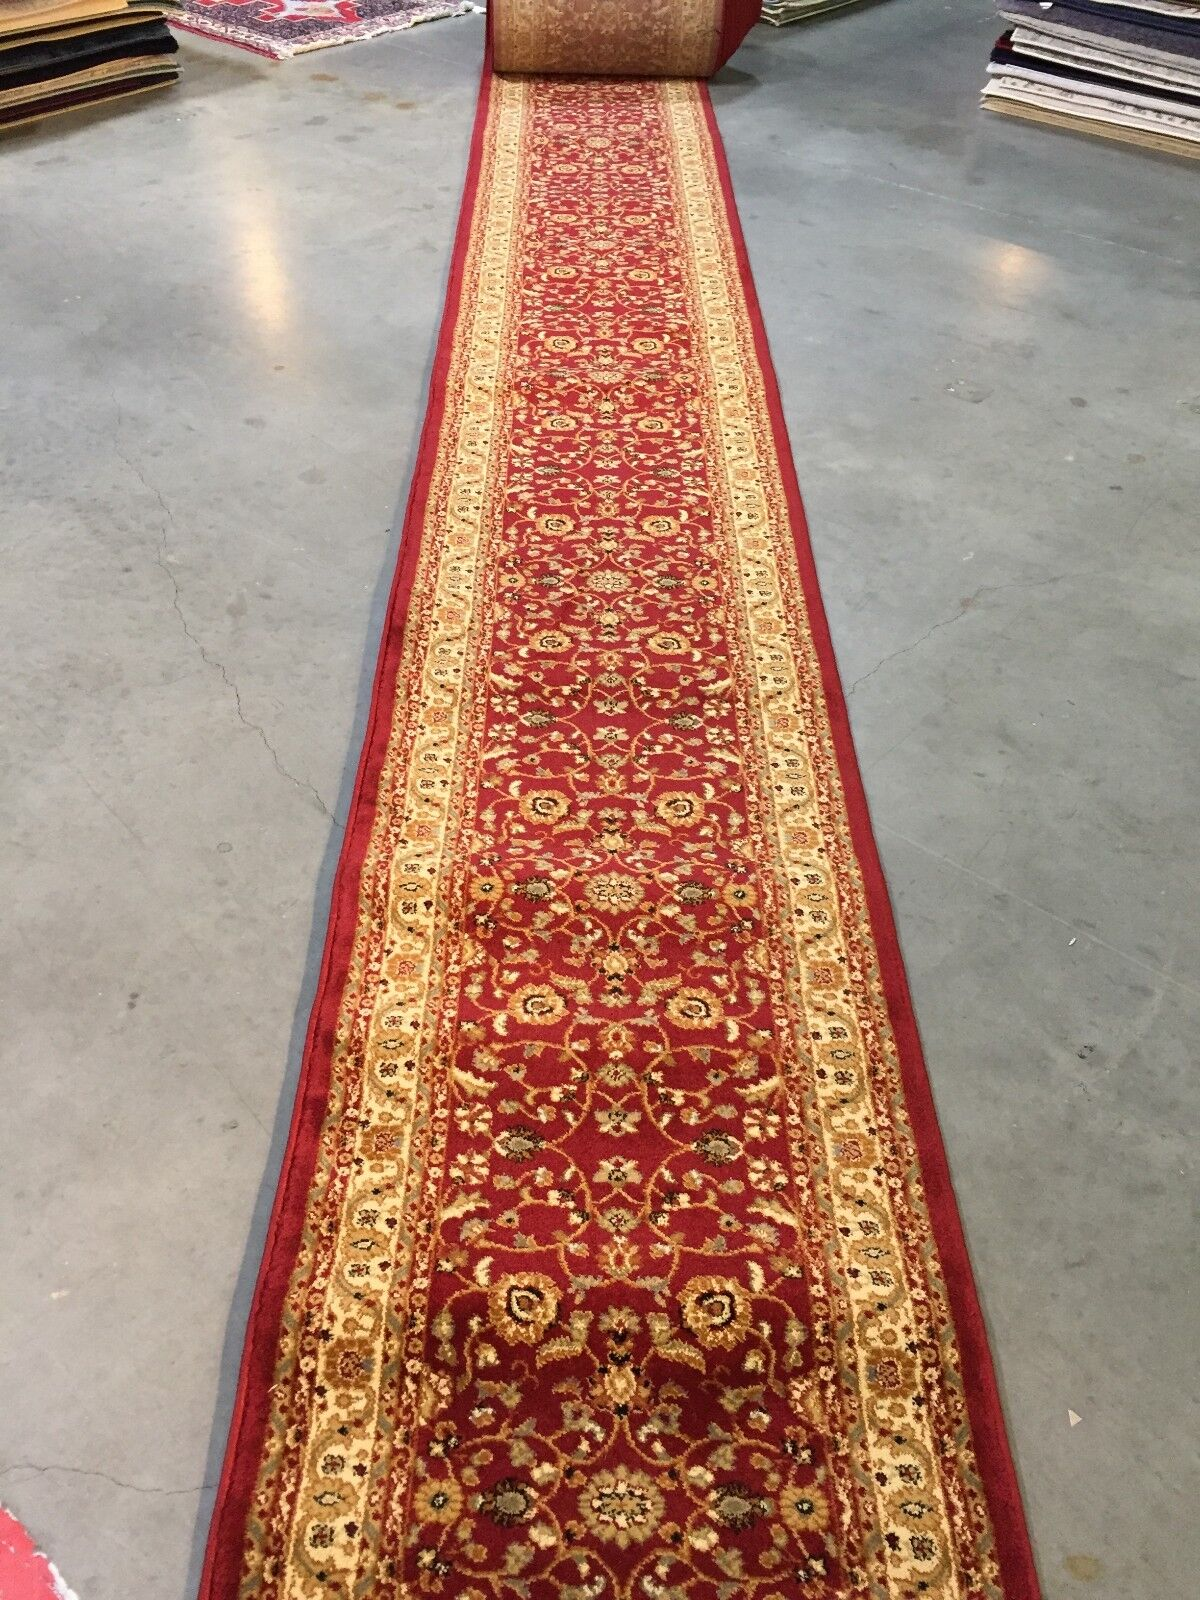 HALLWAY OR STAIR RUNNER RUG CARPET 26 INCHES WIDE